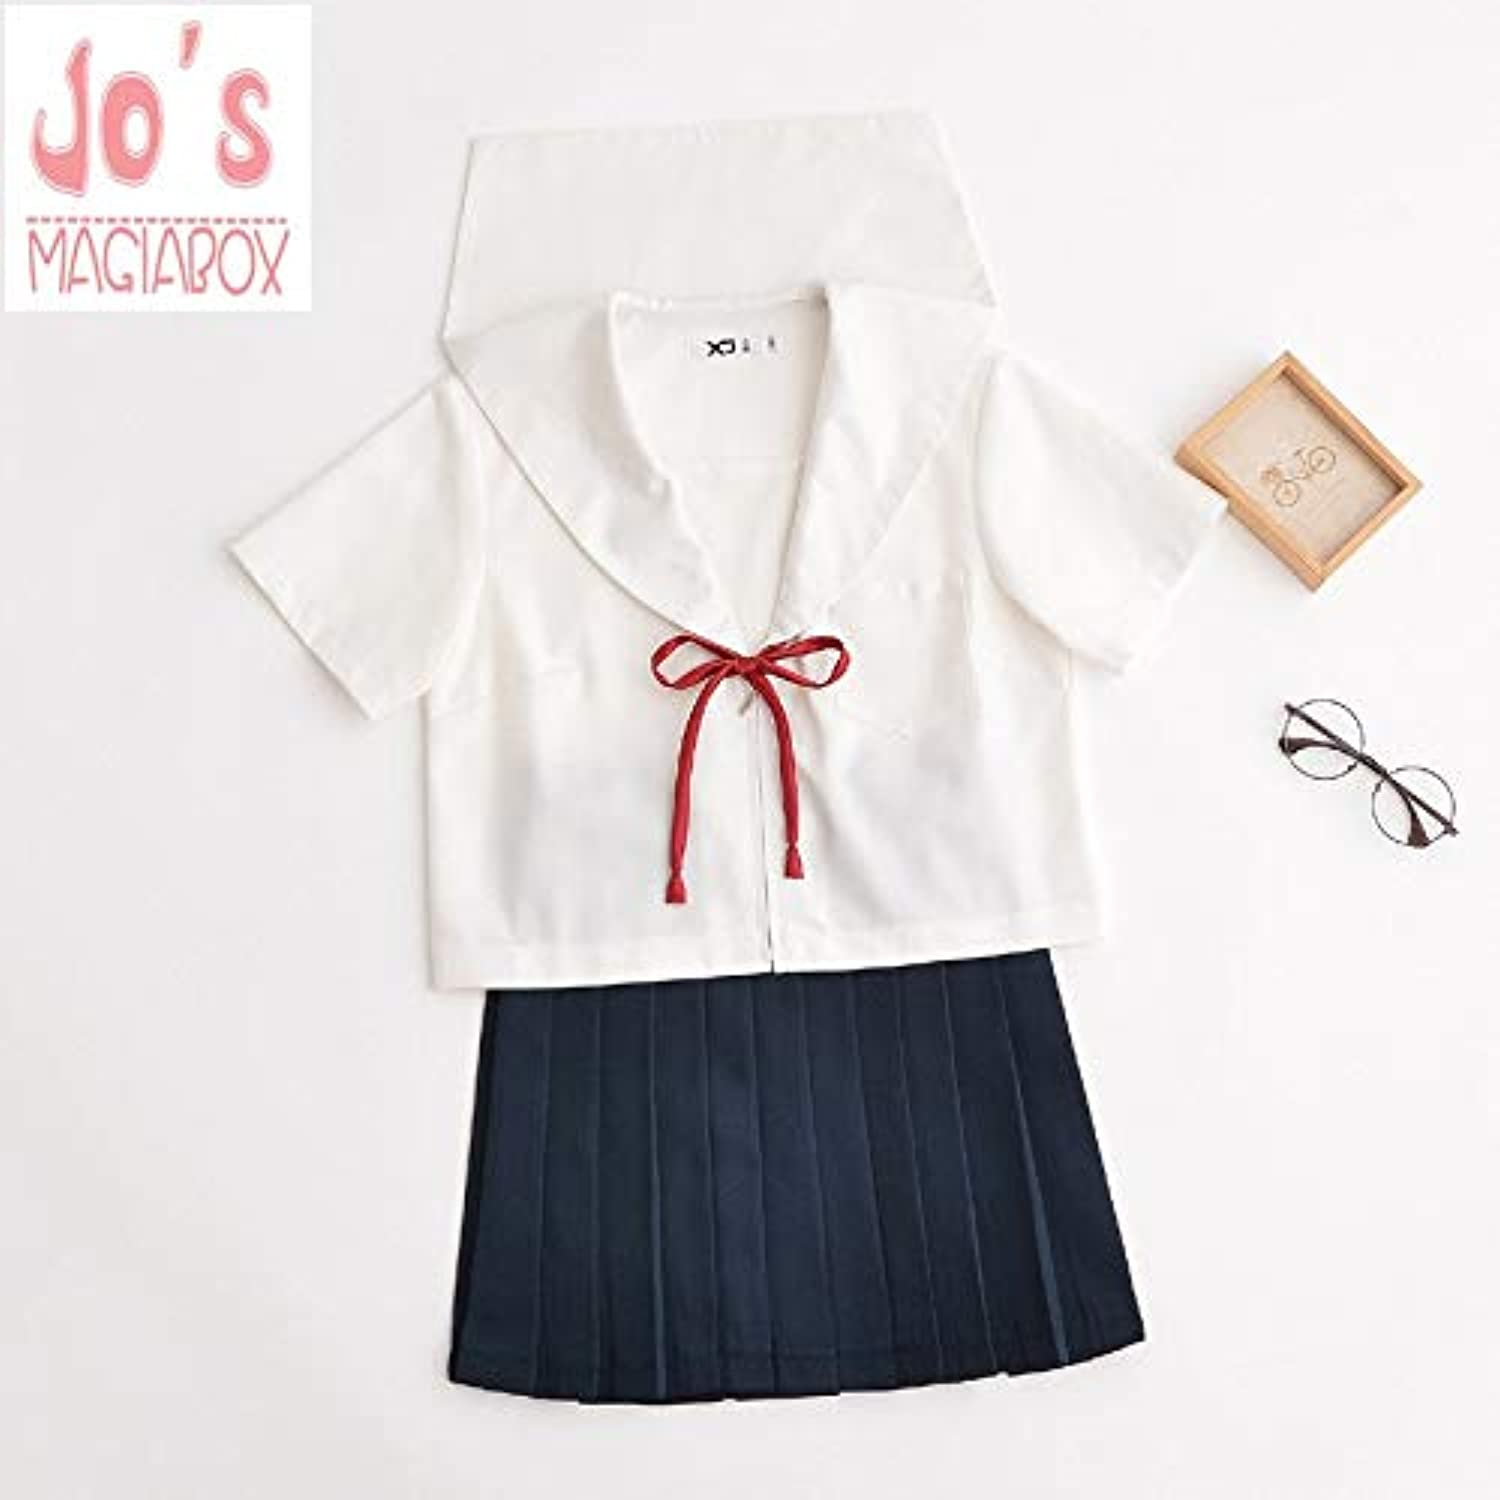 WHFDBZQ Student School Uniform Style Sailor Suit Bow Crew Neck Women Tops and Young Girl Solid Mini Pleated Skirts